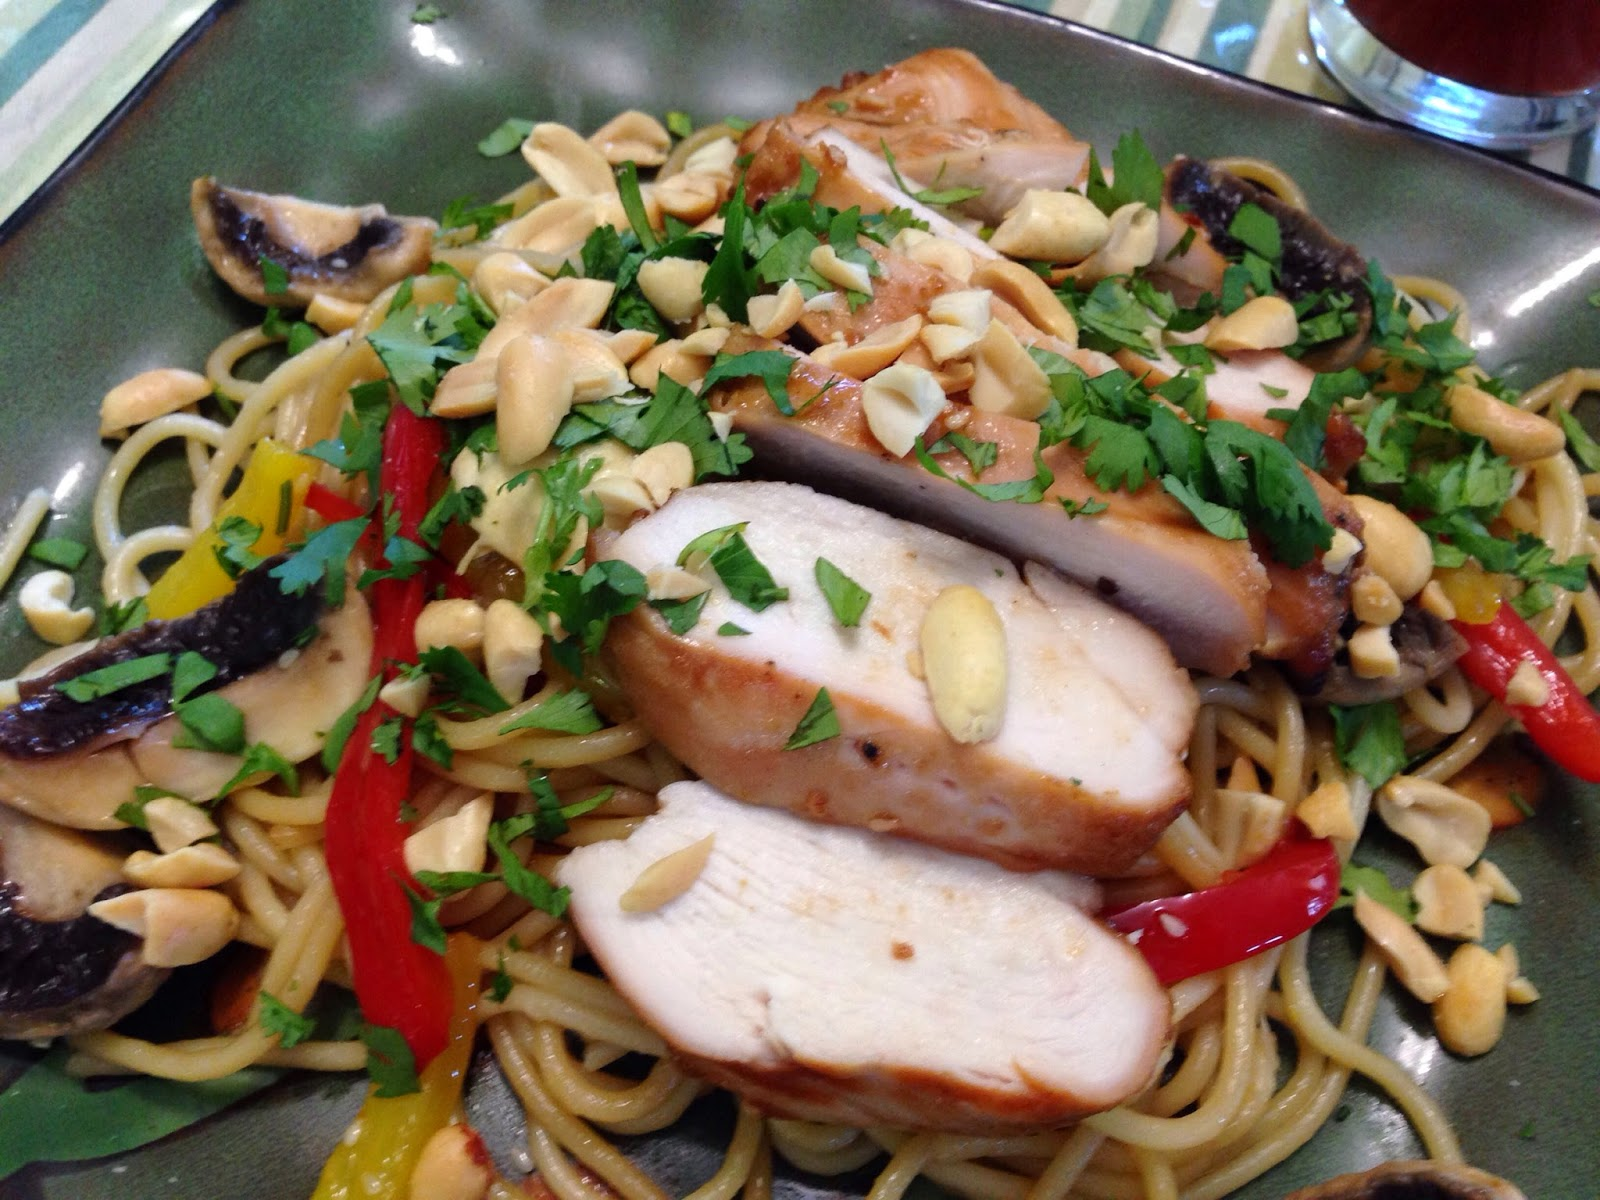 ... & Spicy Noodles with Grilled Chicken and Strawberry Poppyseed Salad